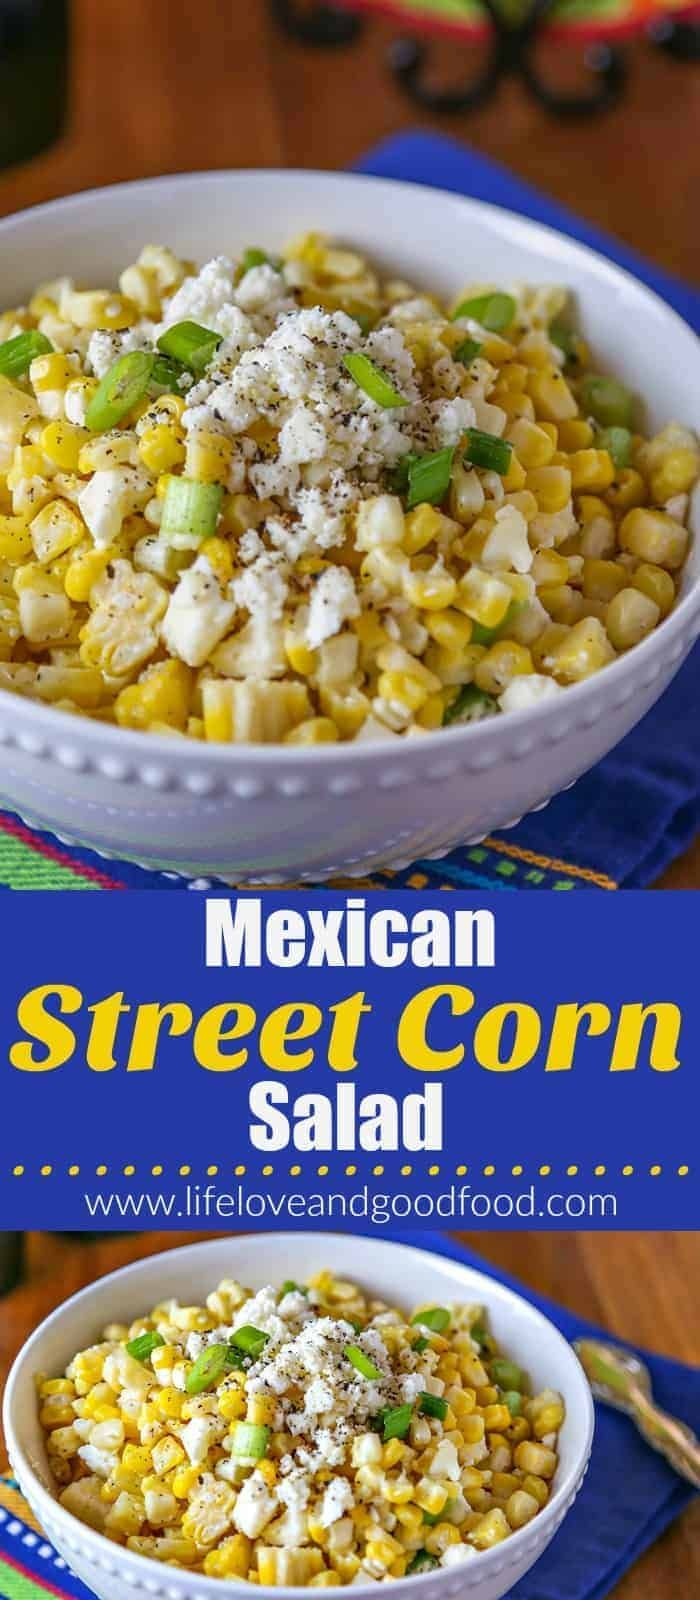 Mexican Street Corn Salad | Life, Love, and Good Food